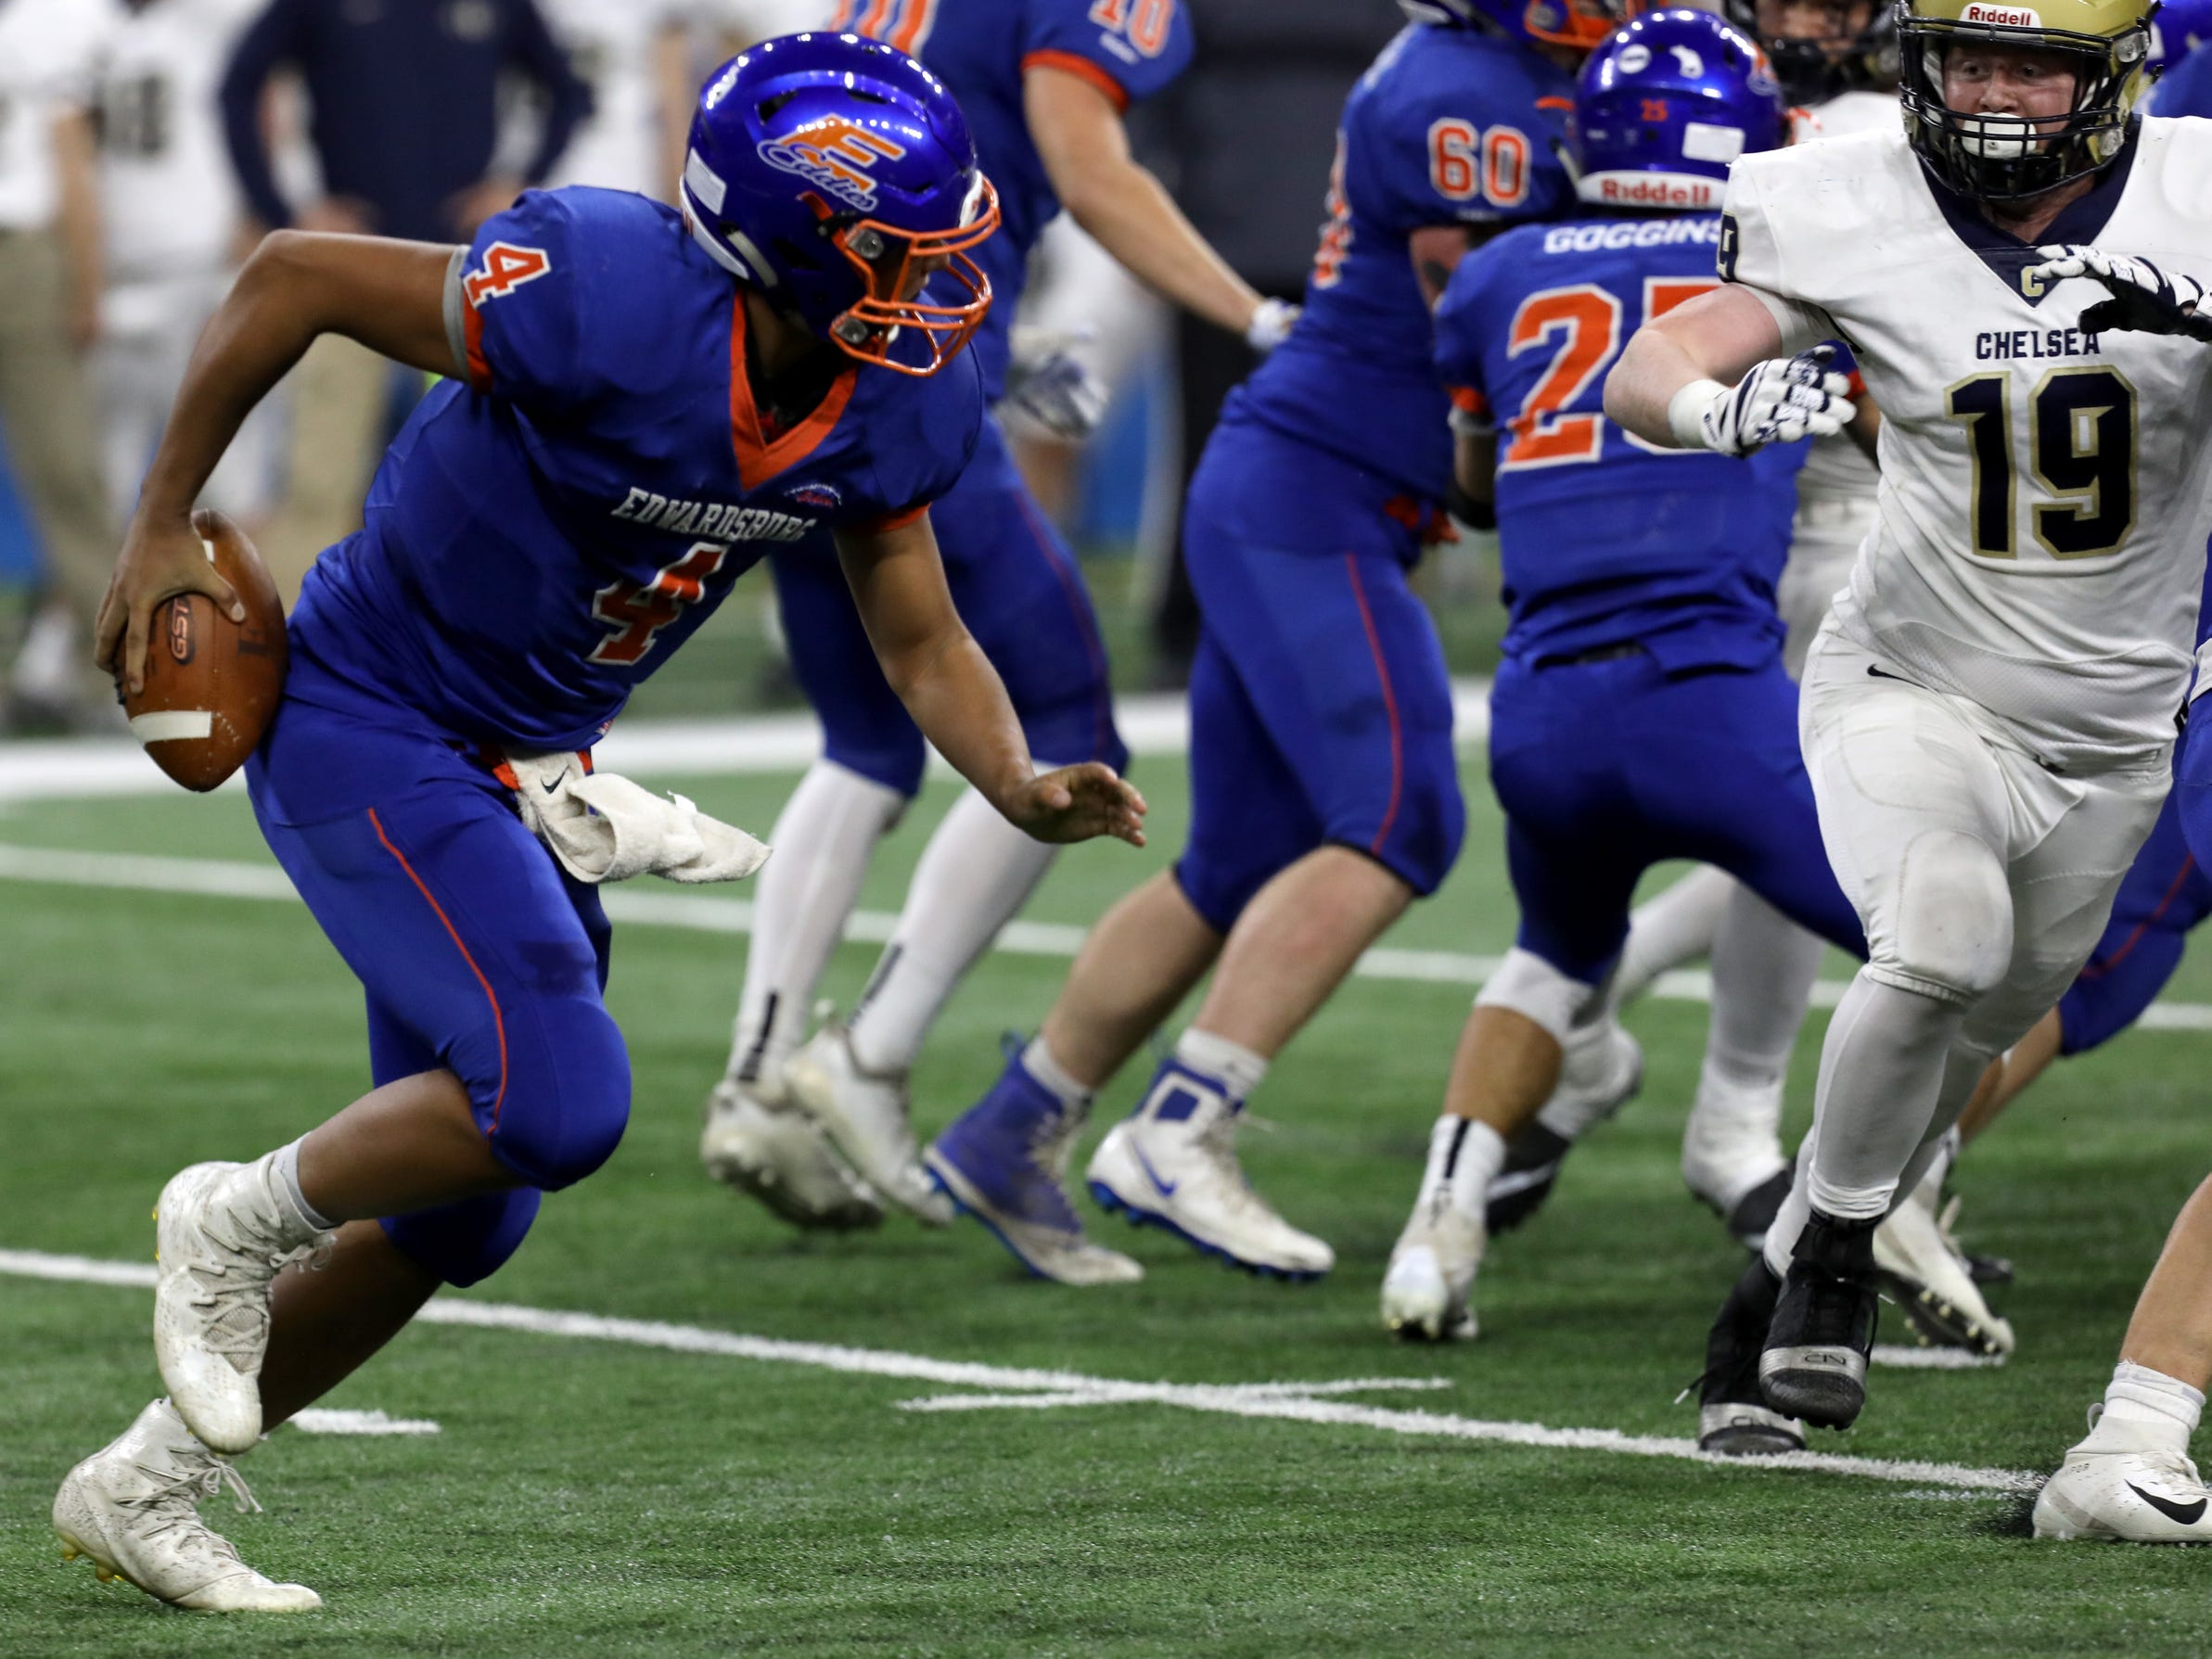 Edwardsburg runs by Chelsea to win first MHSAA football state title